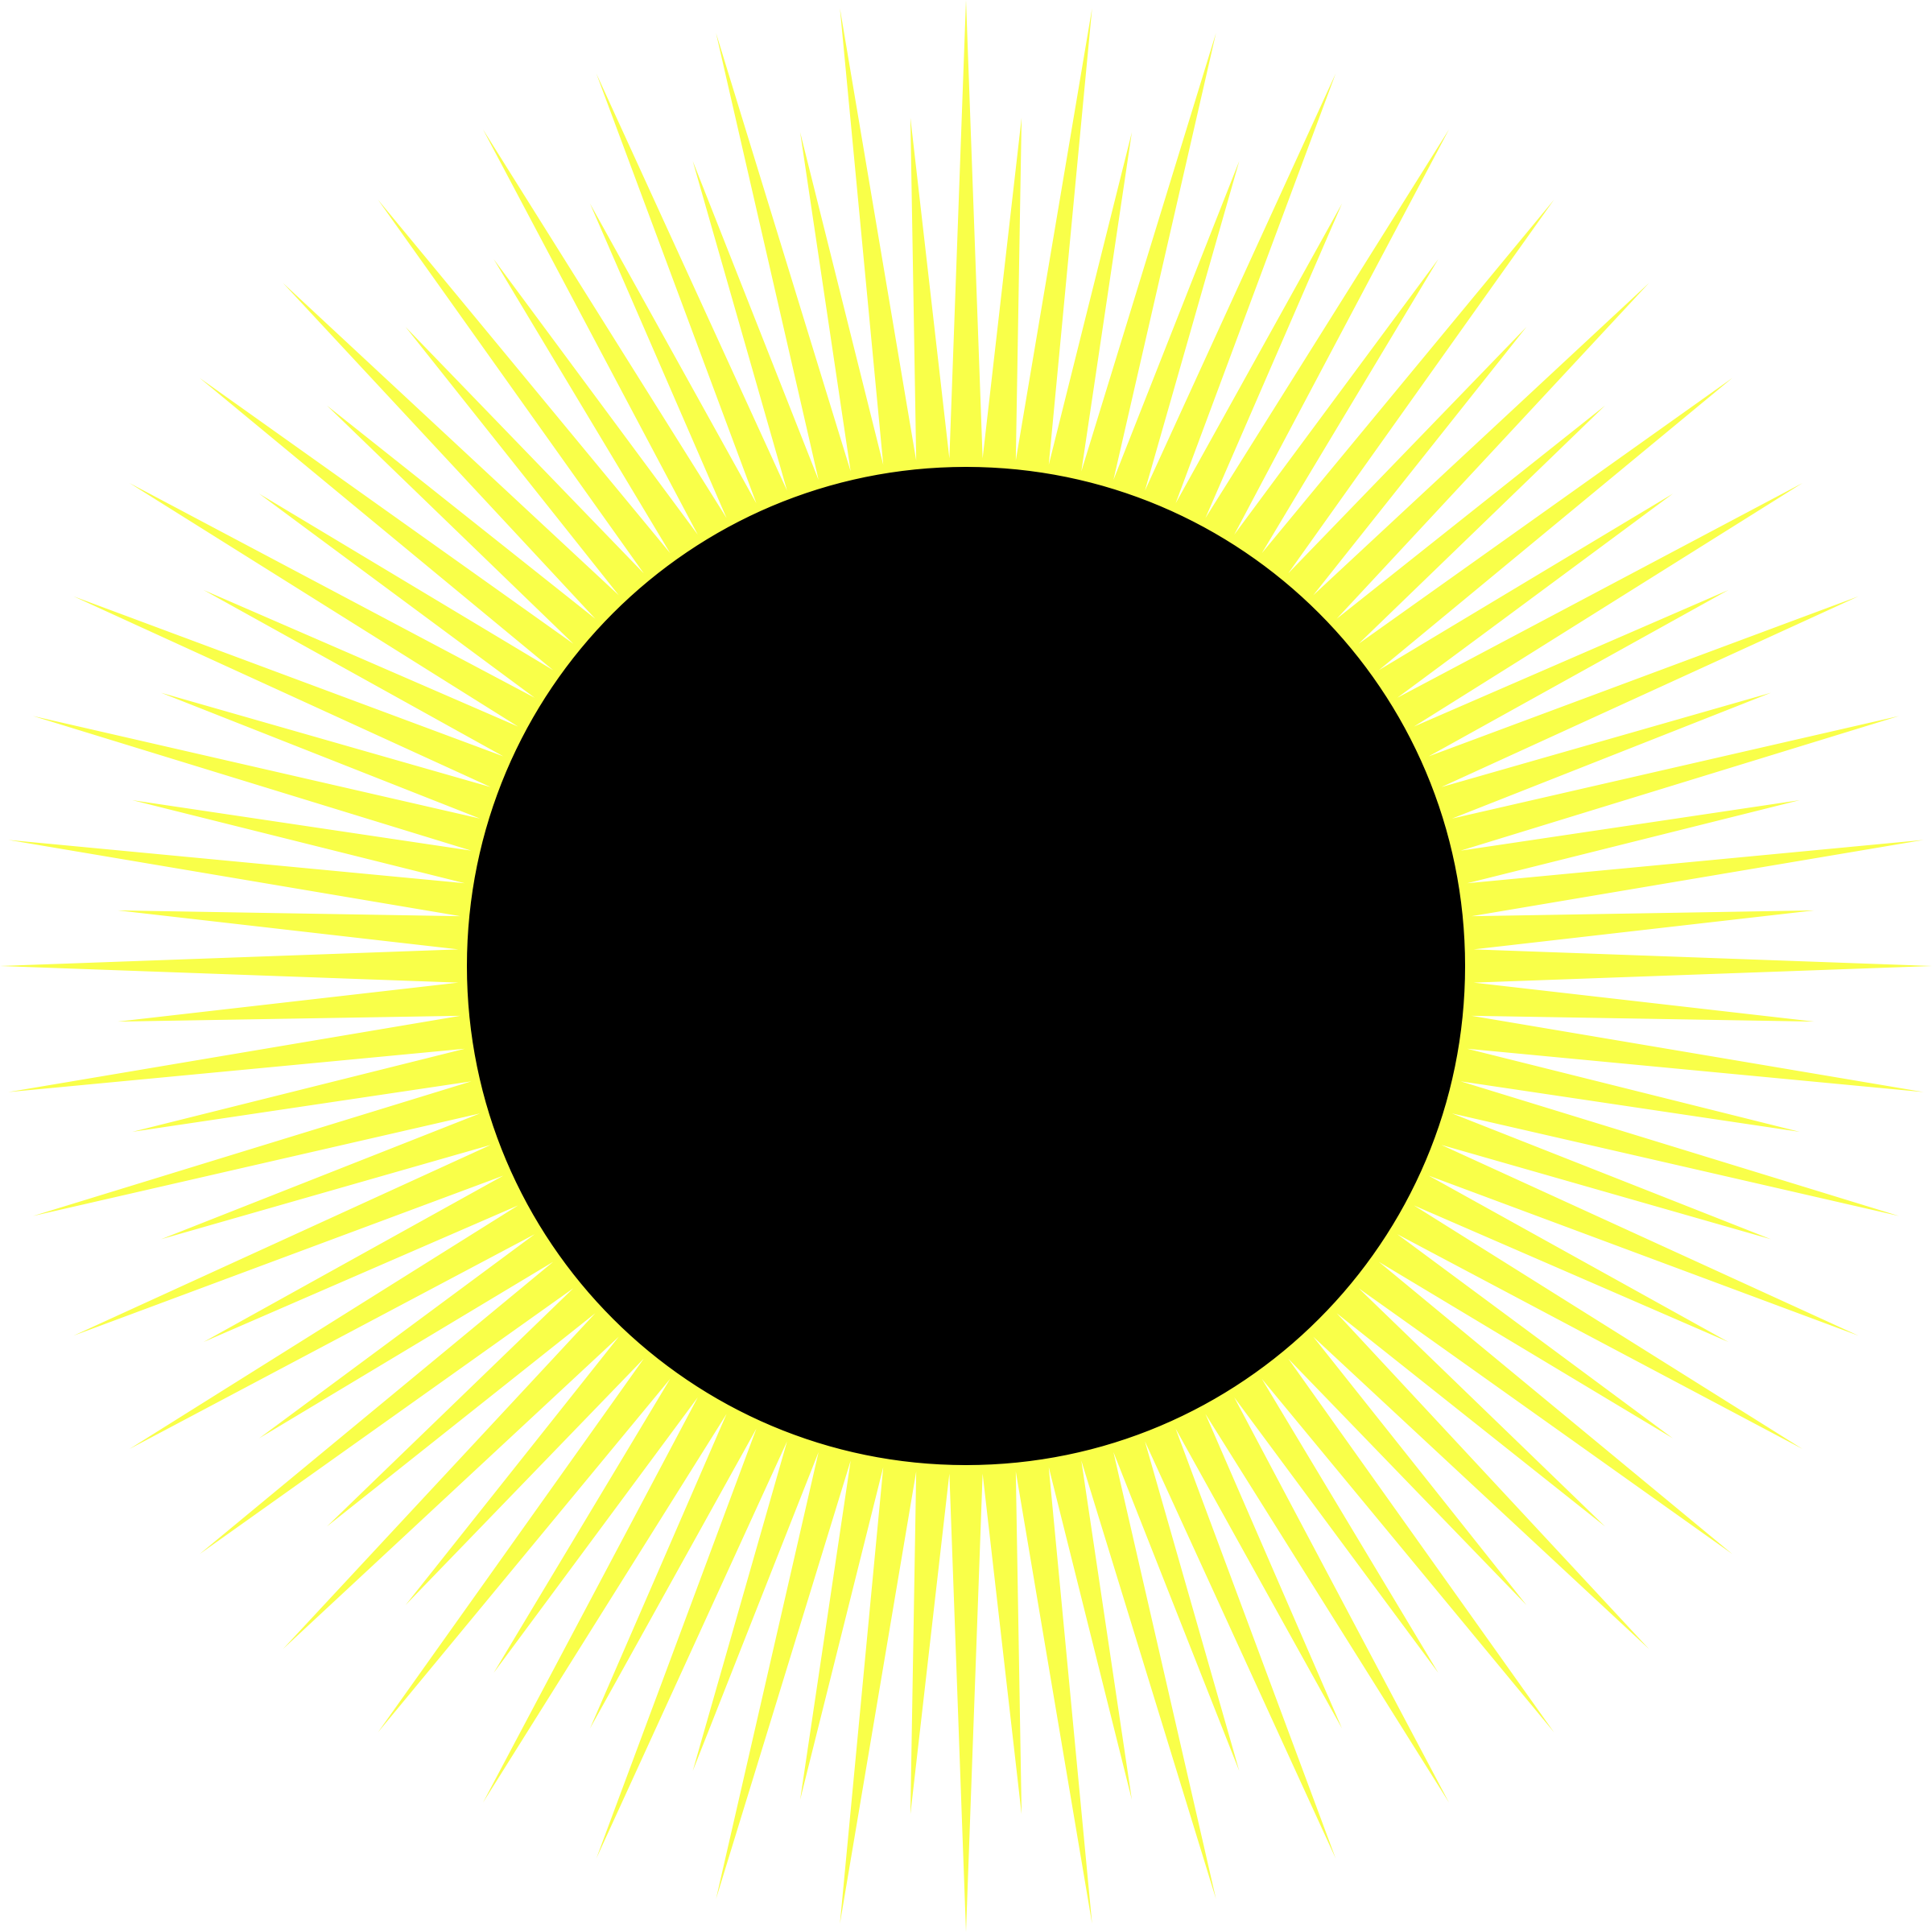 Solar Eclipse by AdamStanislav